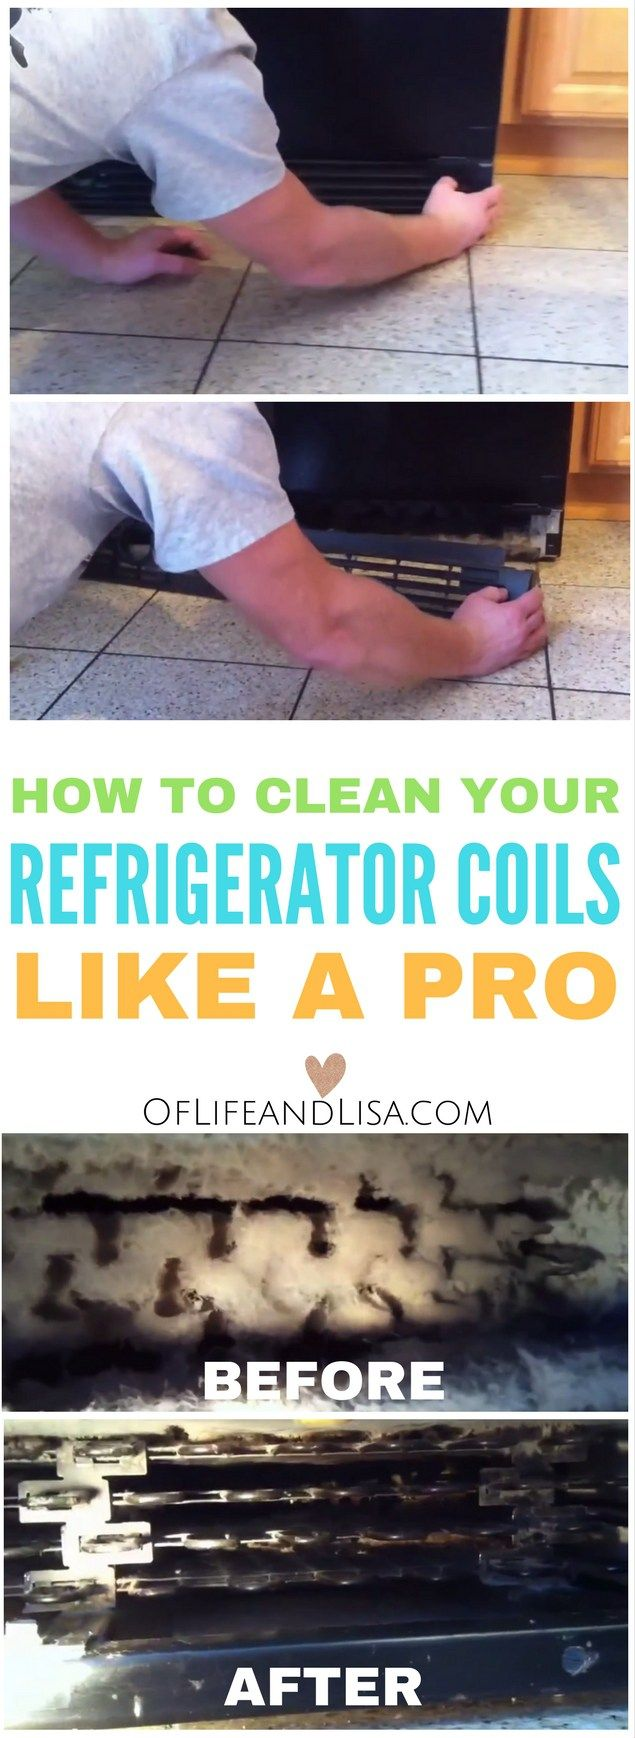 When was the last time that you cleaned your refrigerator coils?